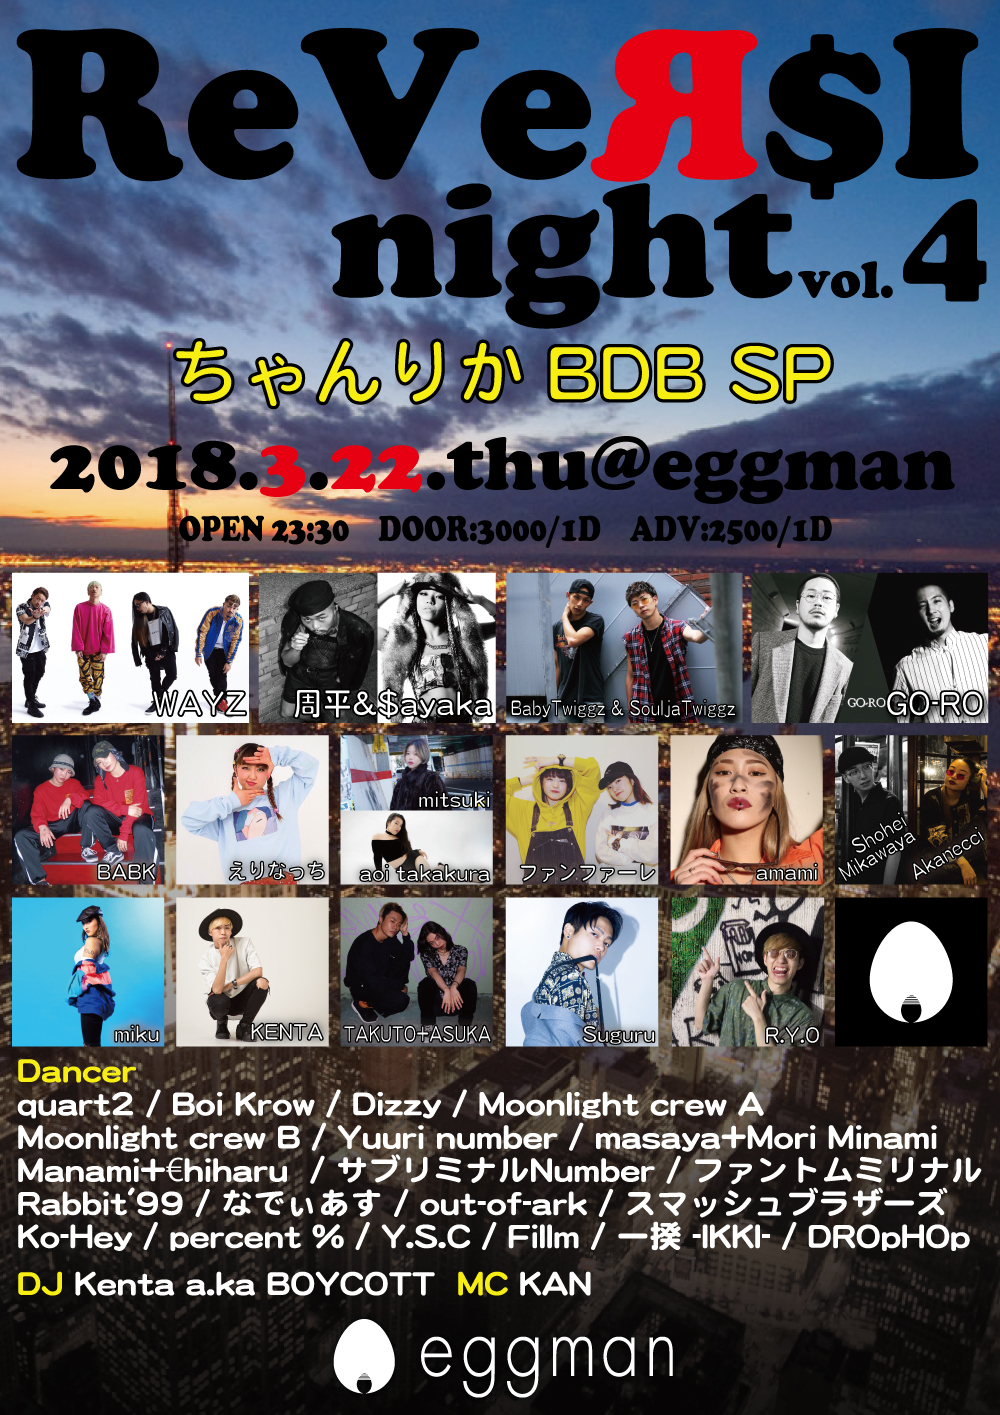 ReVeR$I night vol.4 -ちゃんりかBDB-